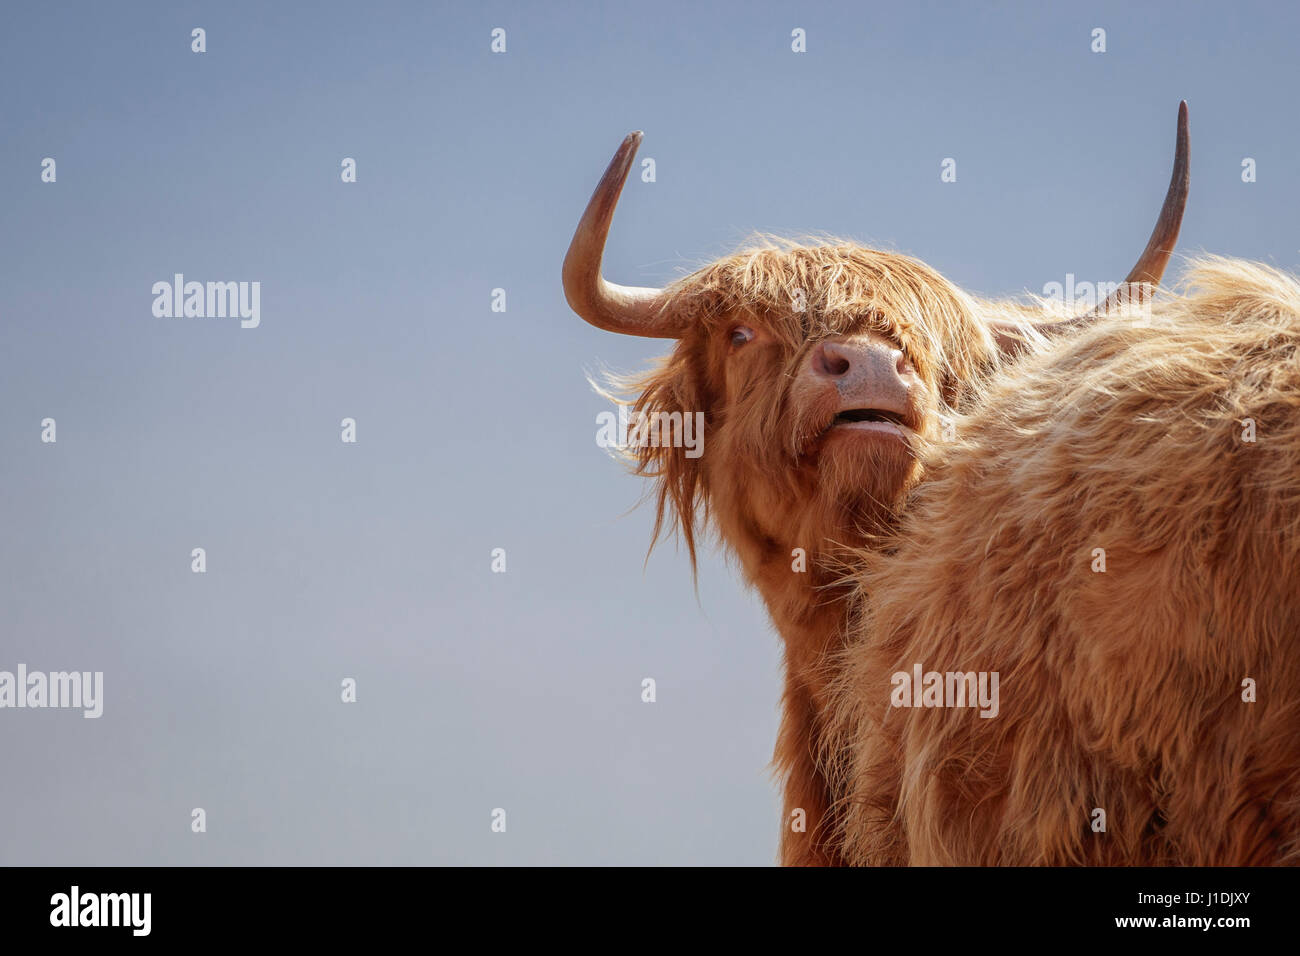 Vache Highland, Highland cattle, Hairy Moo Coo Photo Stock